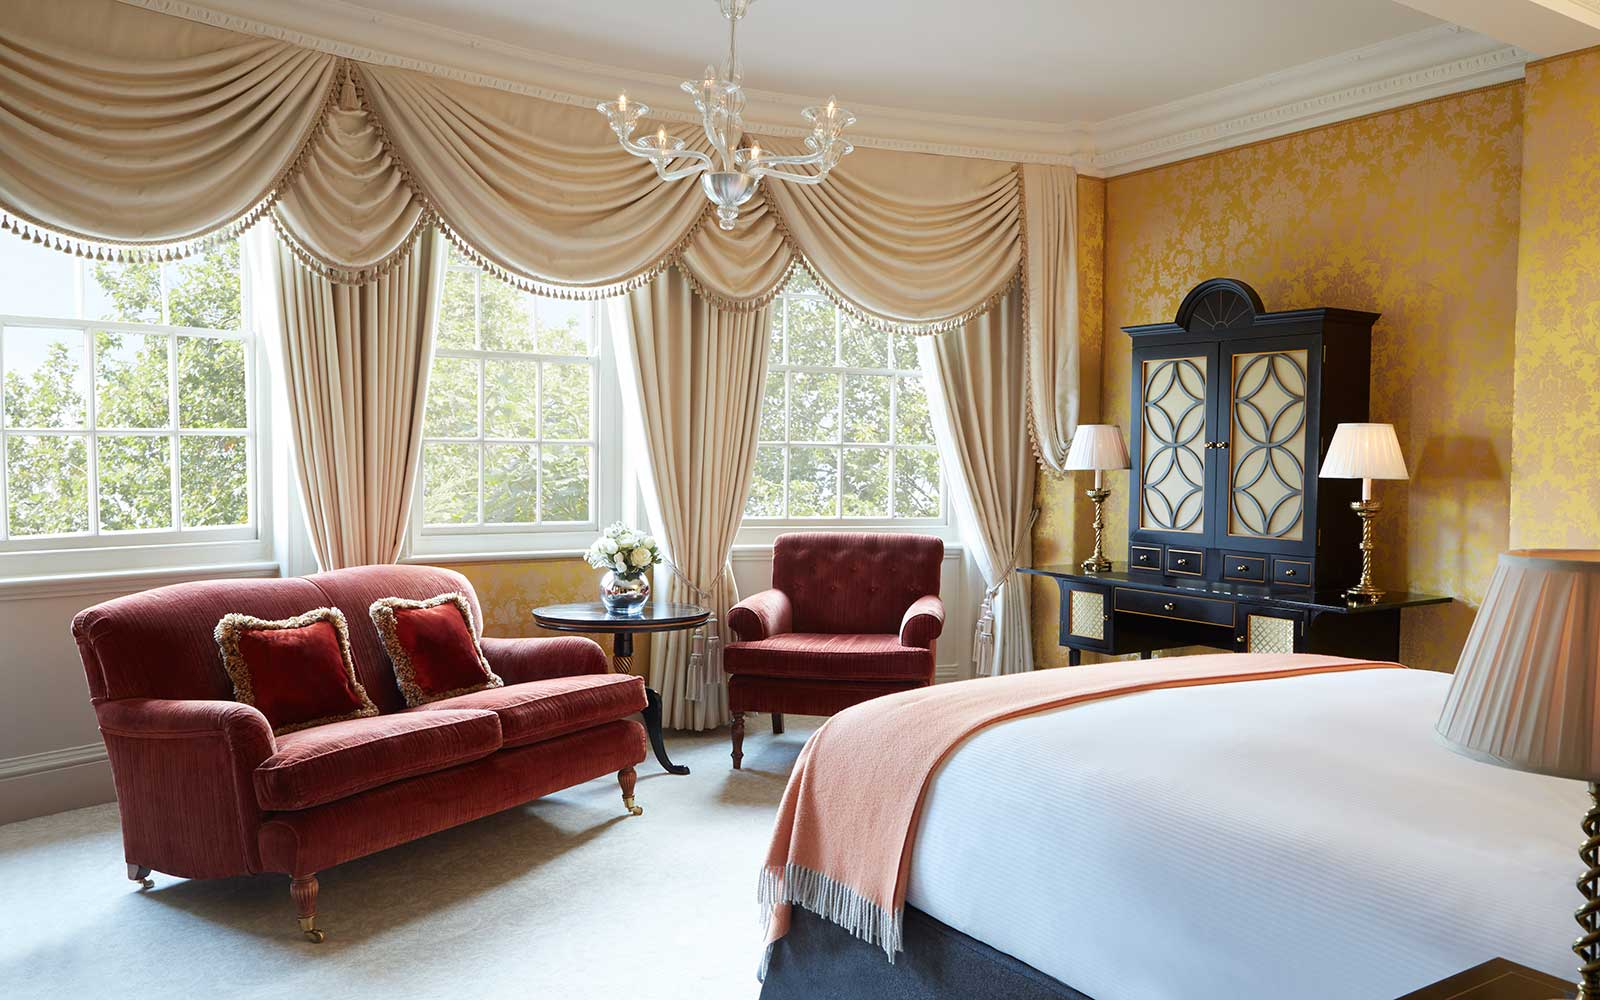 The Goring Hotel in Europe